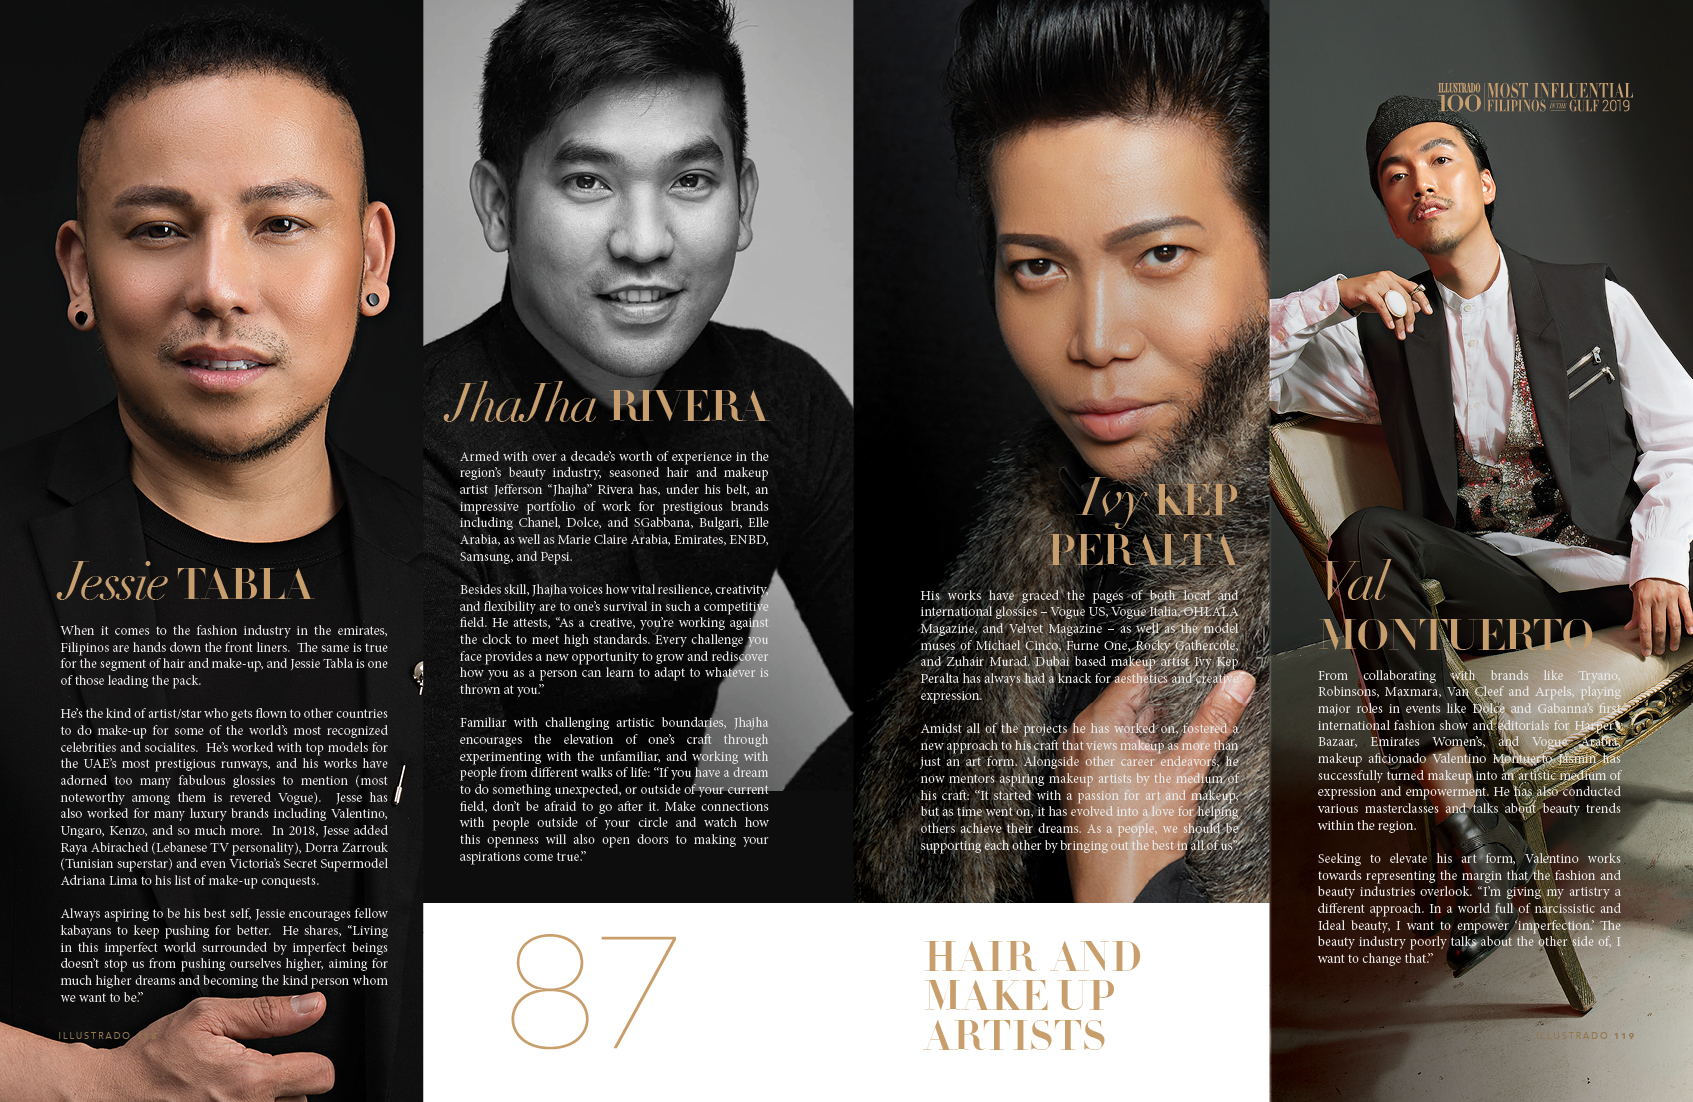 Hair and Makeup Artists - Most influential Filipinos in the